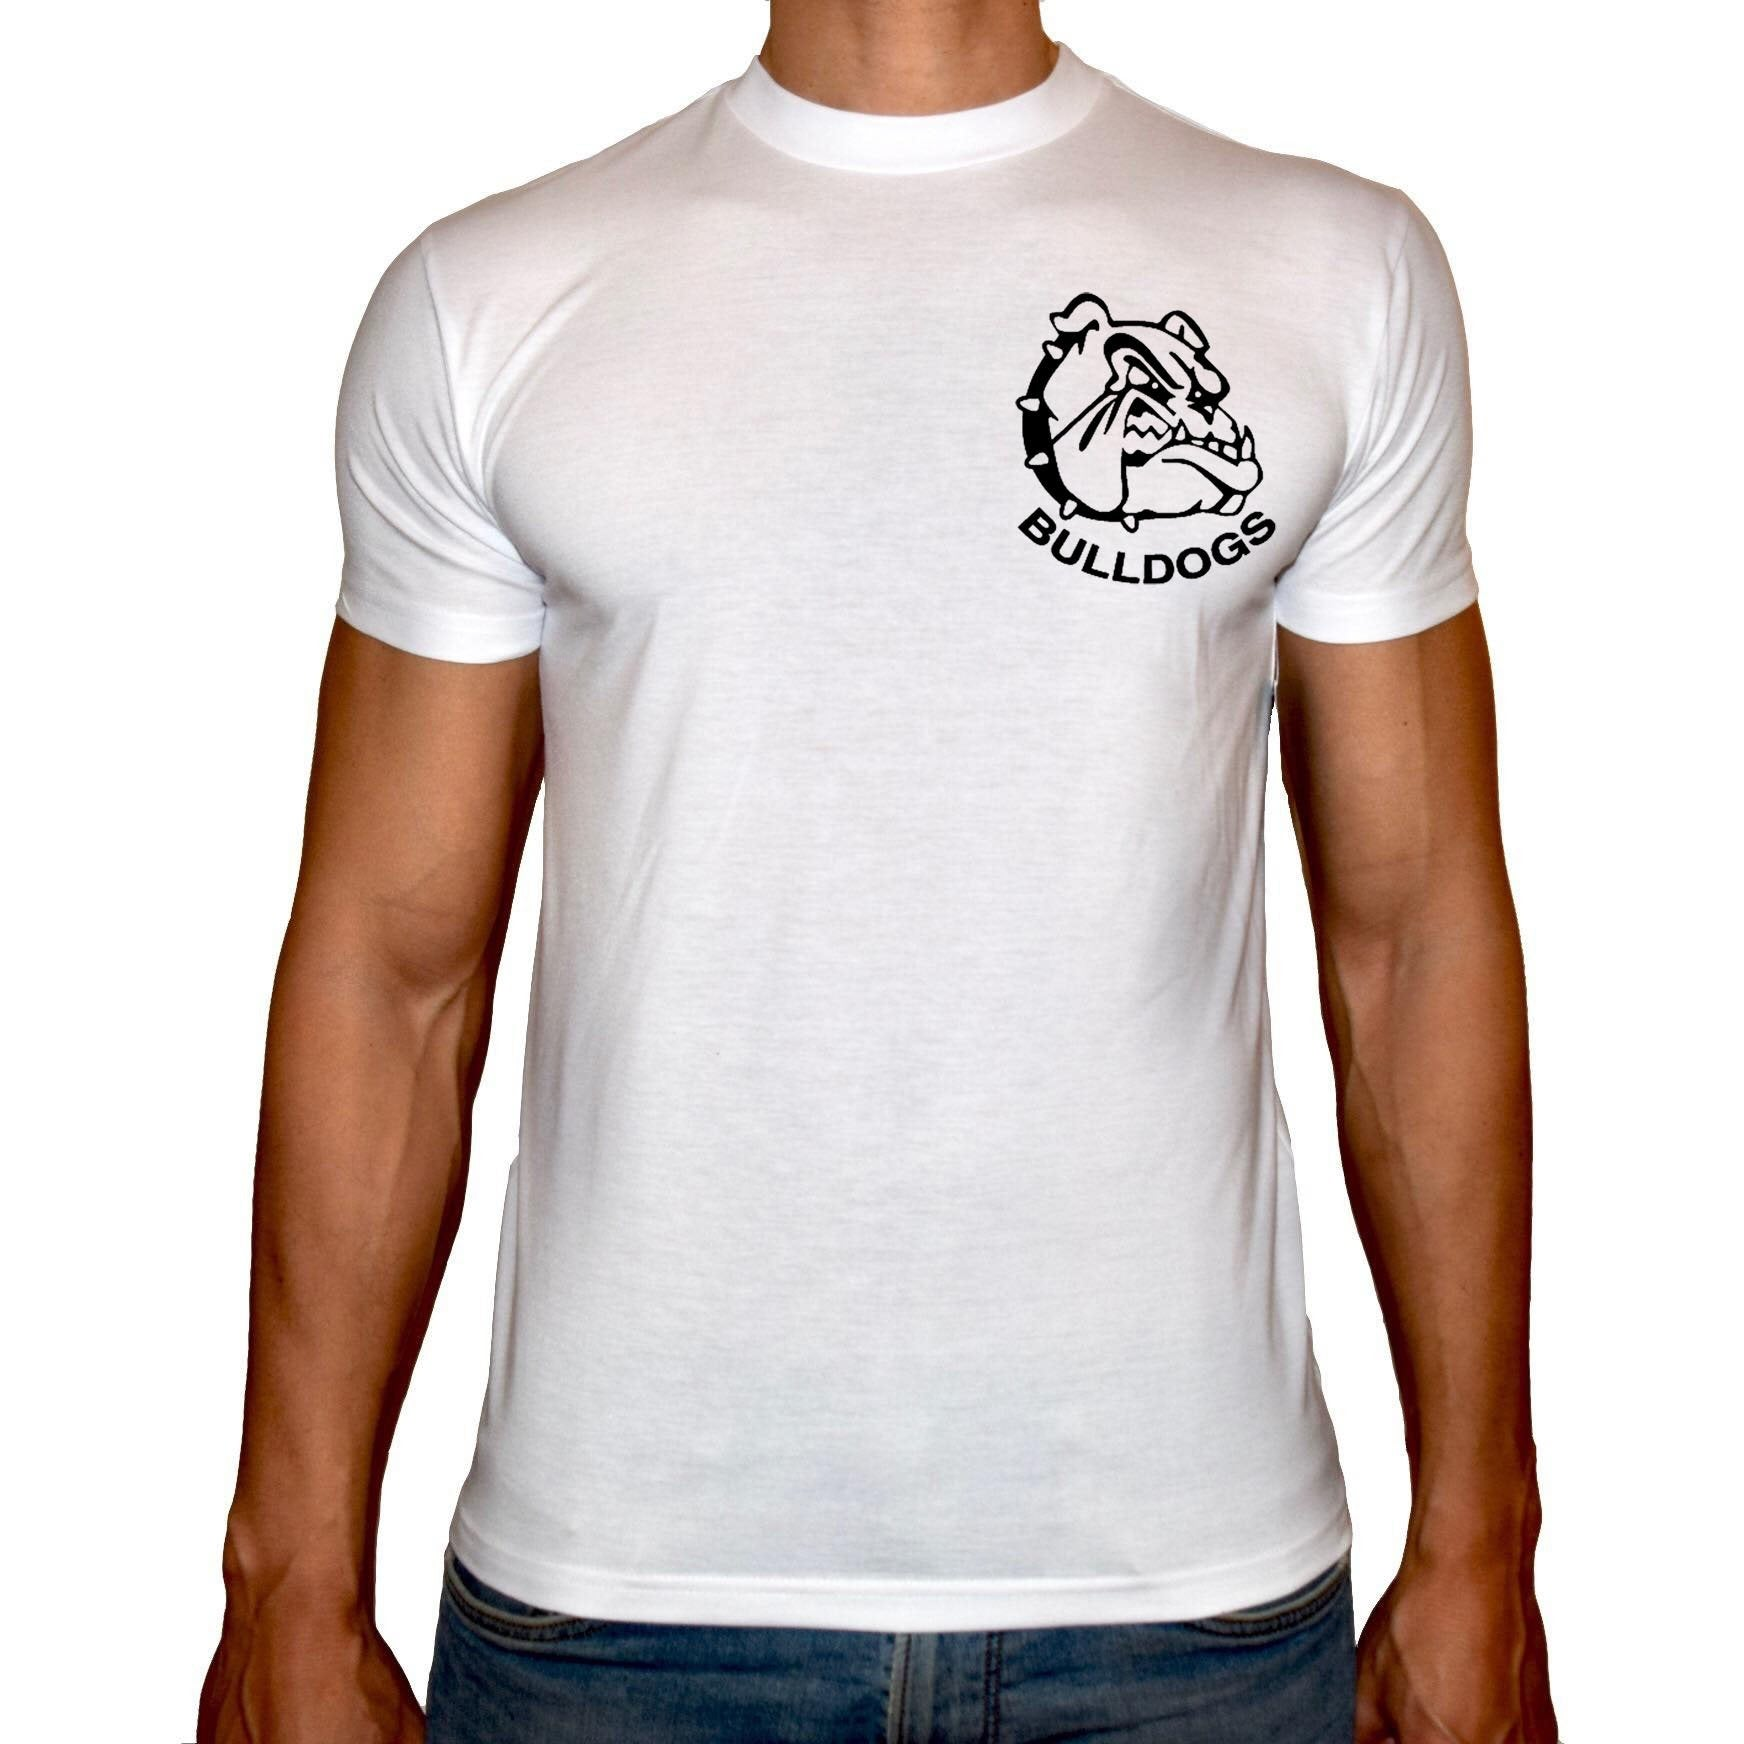 Phoenix WHITE Round Neck Printed T-Shirt Men (Bulldogs)